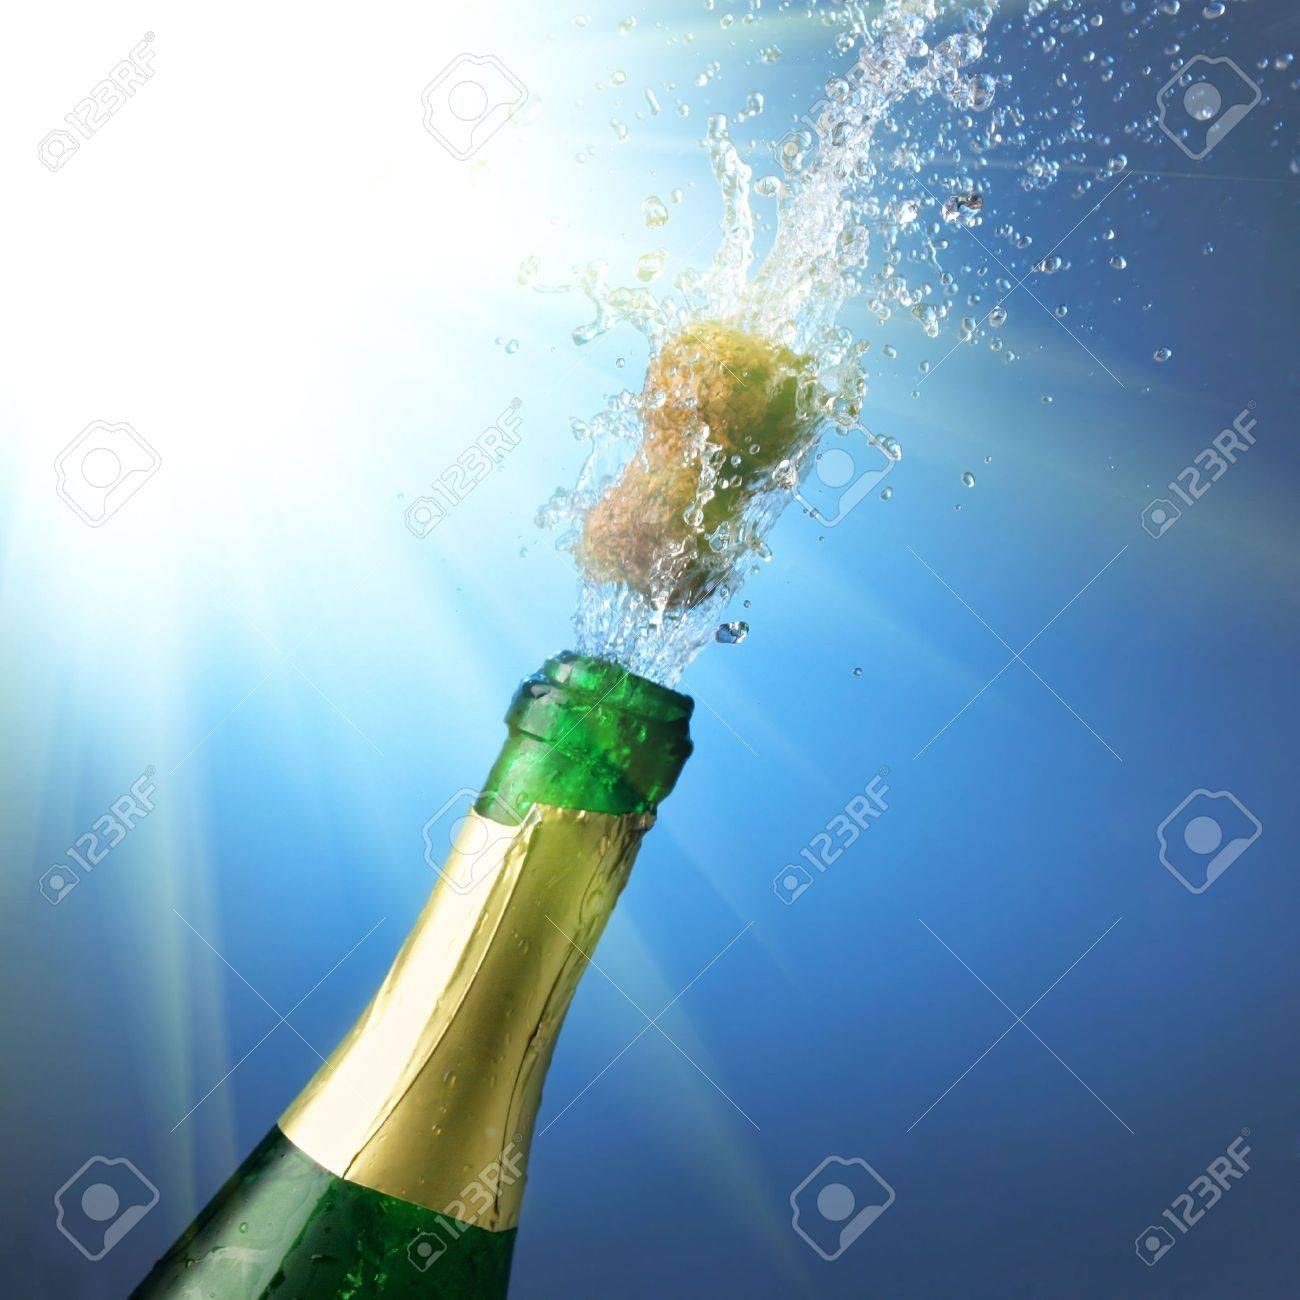 Bottle of champagne with splashes over blue background Stock Photo - 3865388